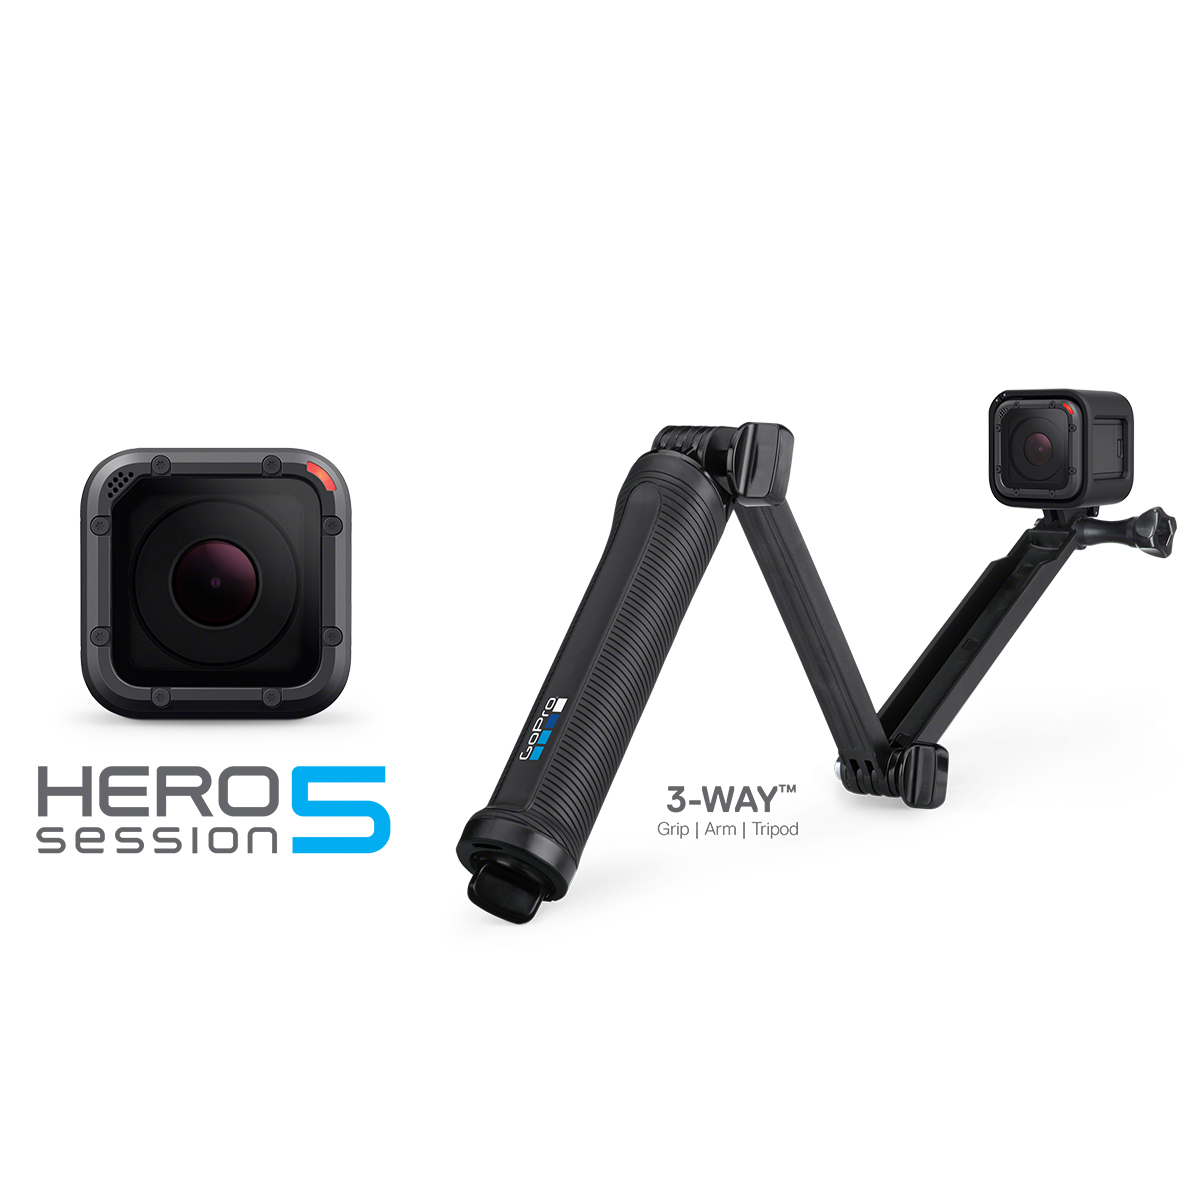 FREE GoPro 3-Way Mount with HERO5 Session Purchase ($69.99 Value)